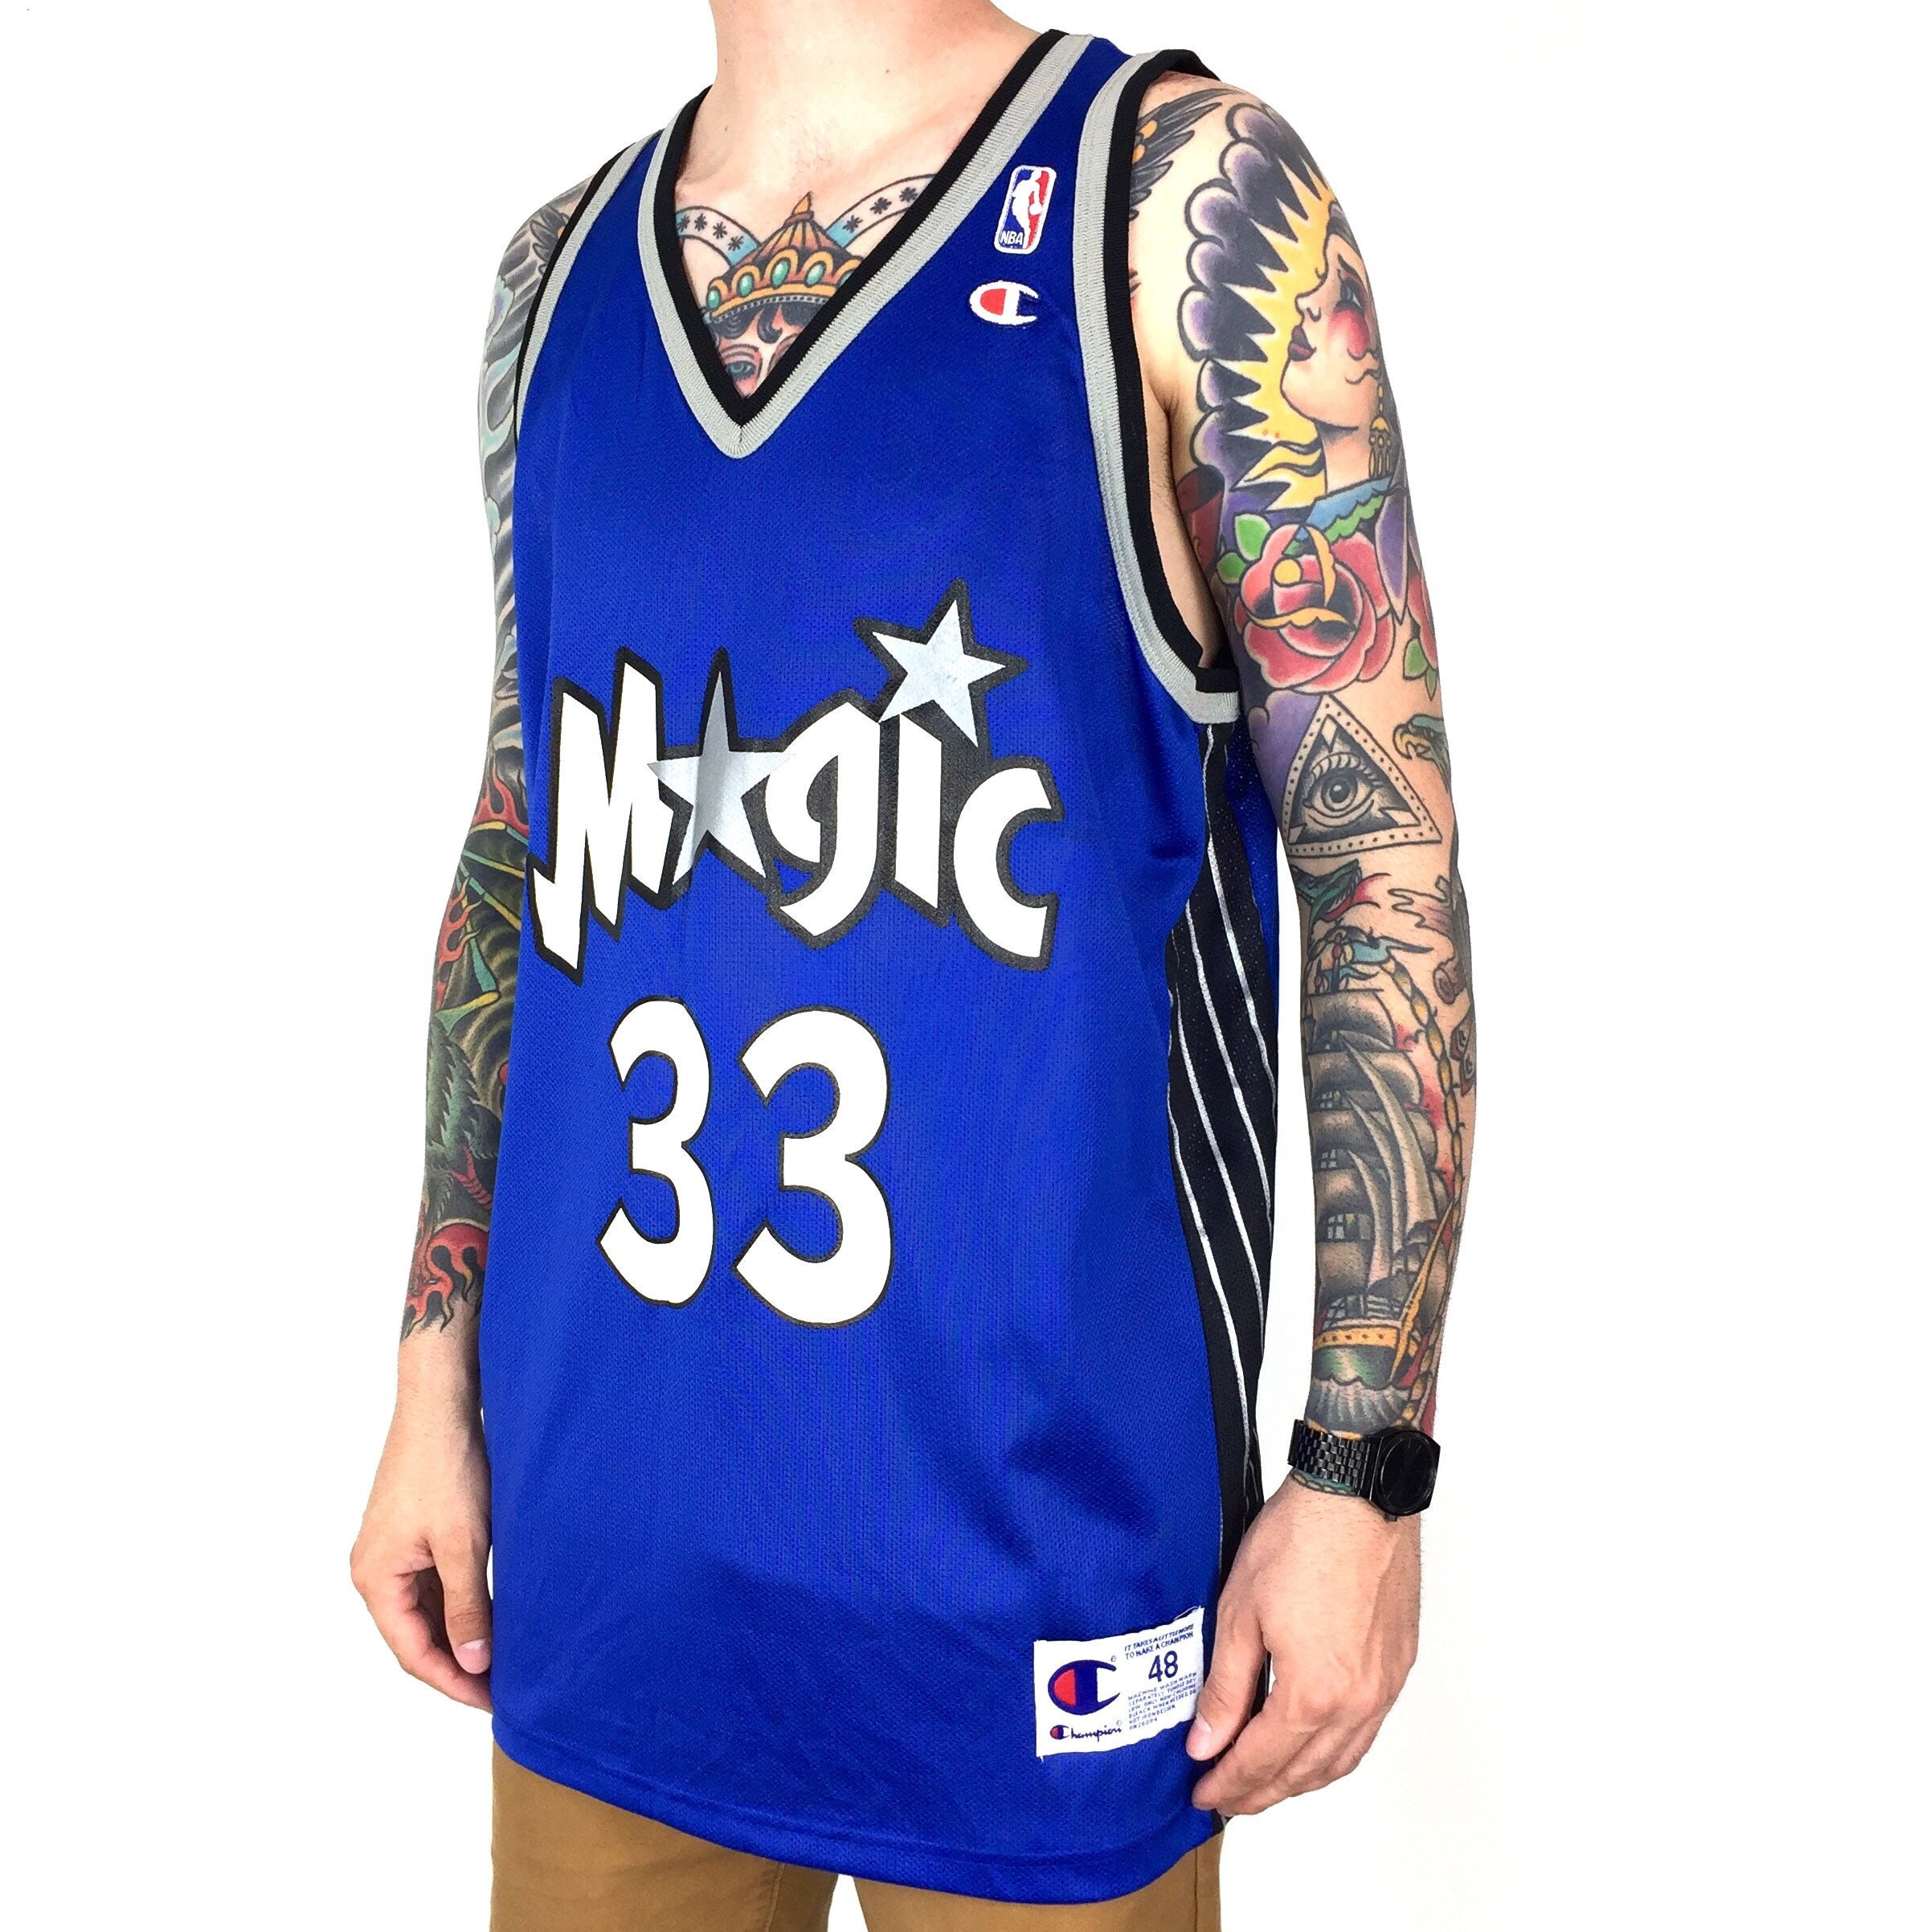 395d427bd Deadstock NWT Vintage NBA Orlando Magic Grant Hill  33 two tone basketball  jersey - Size 48   XL